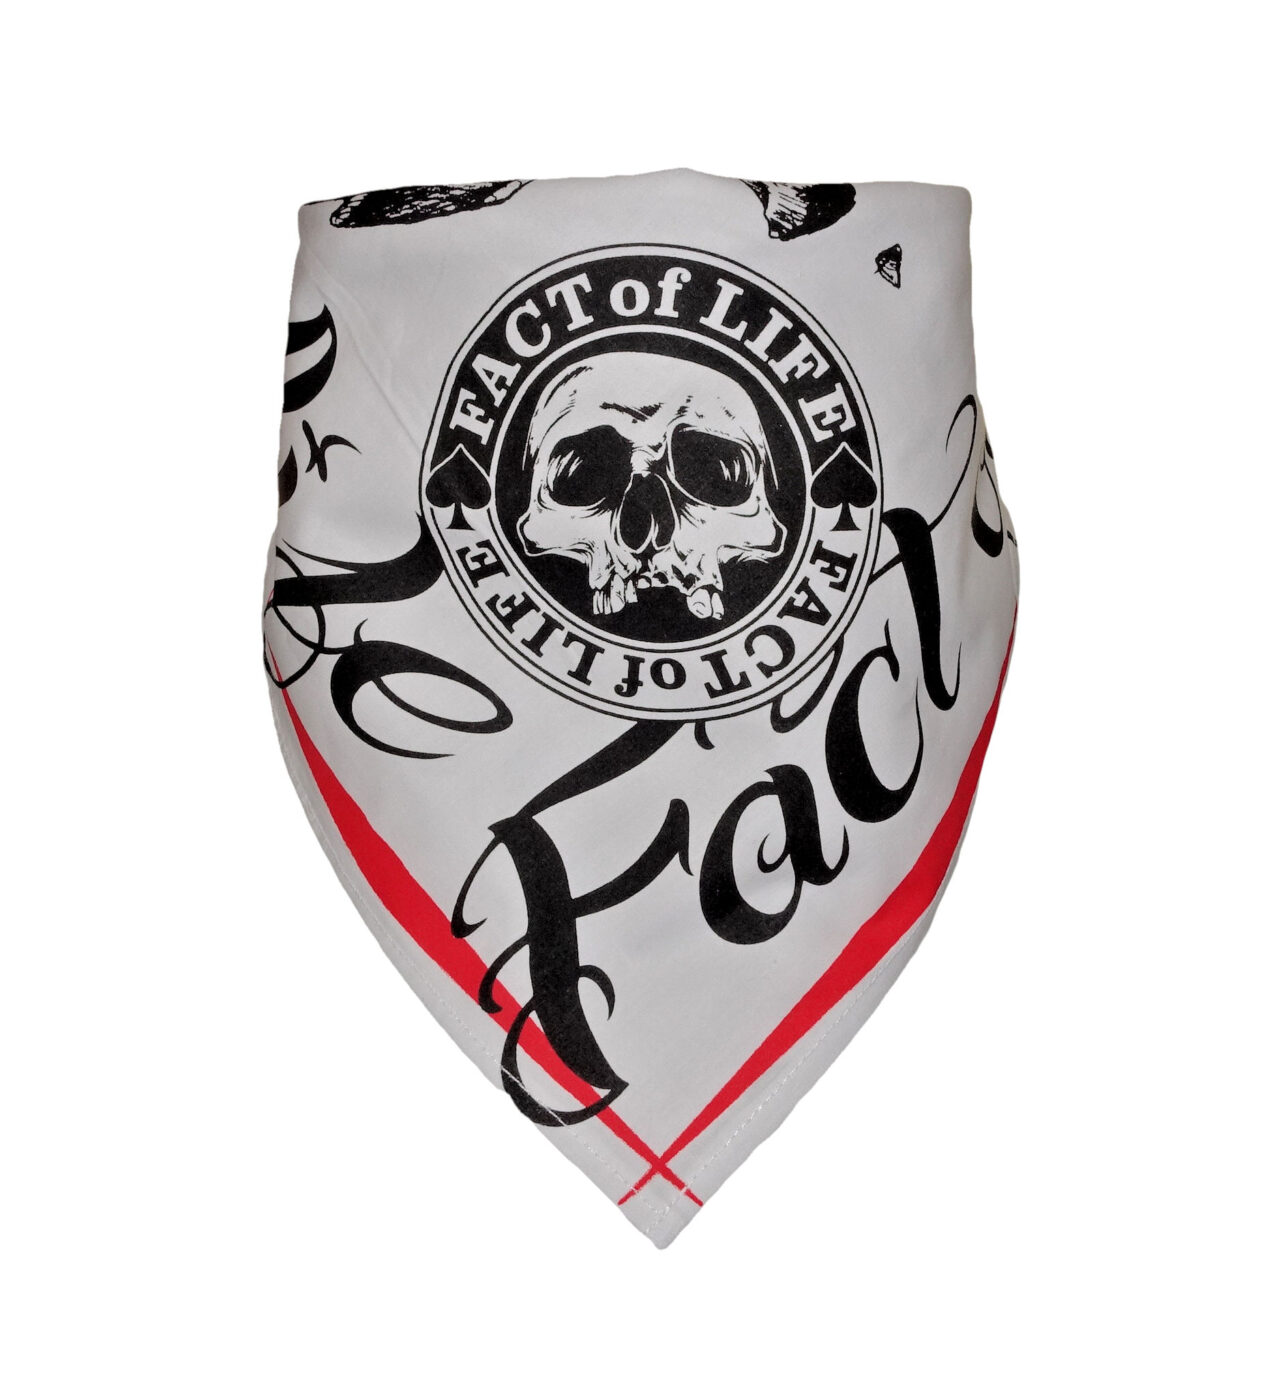 Fact of Life Bandana BD-01 w